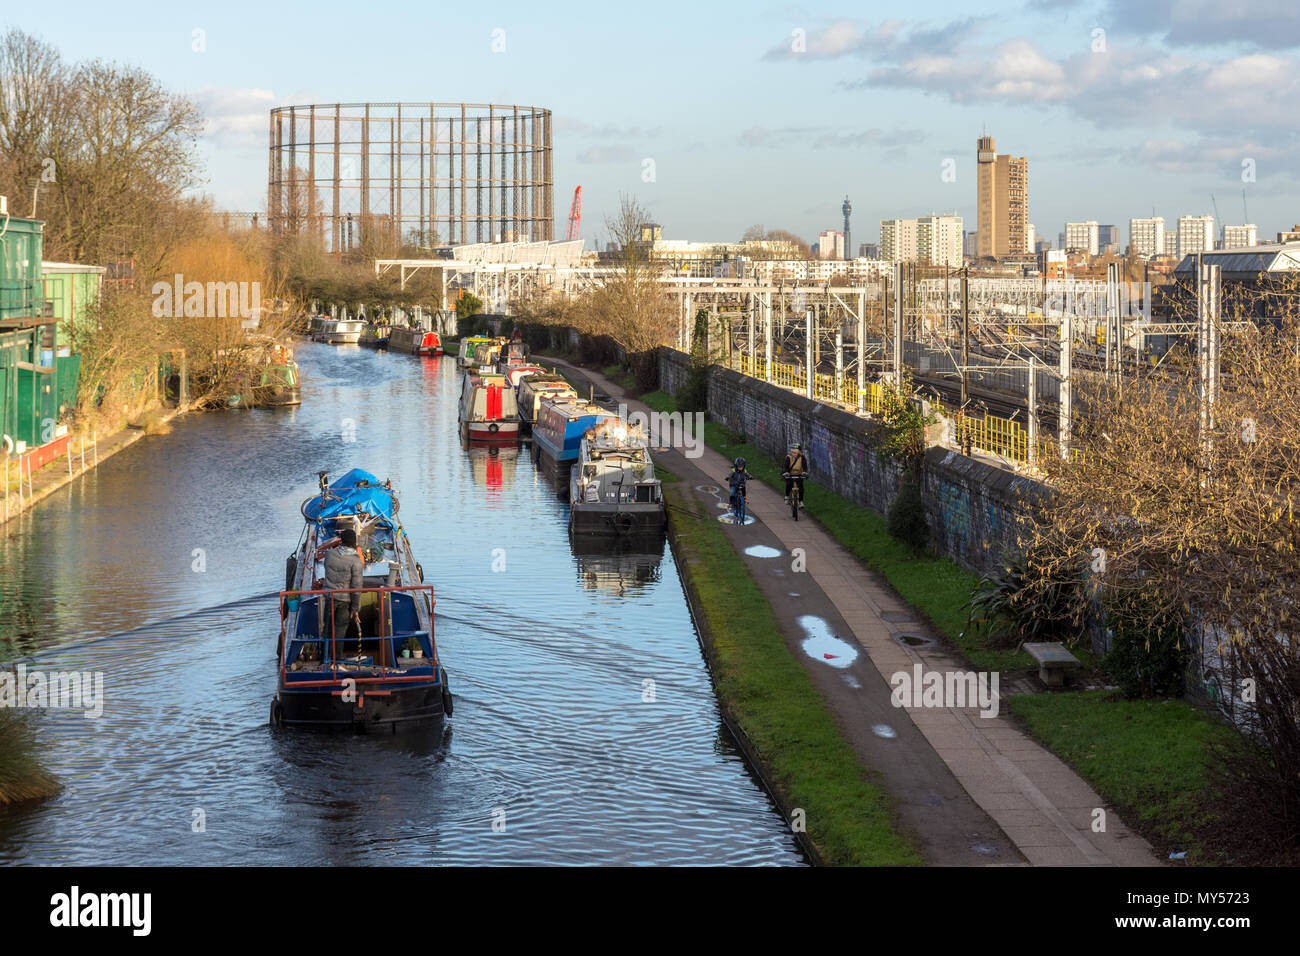 London, England - January 30, 2016: A traditional narrowboat navigating the Grand Union Canal at Old Oak Common, an industrial district and major rede - Stock Image